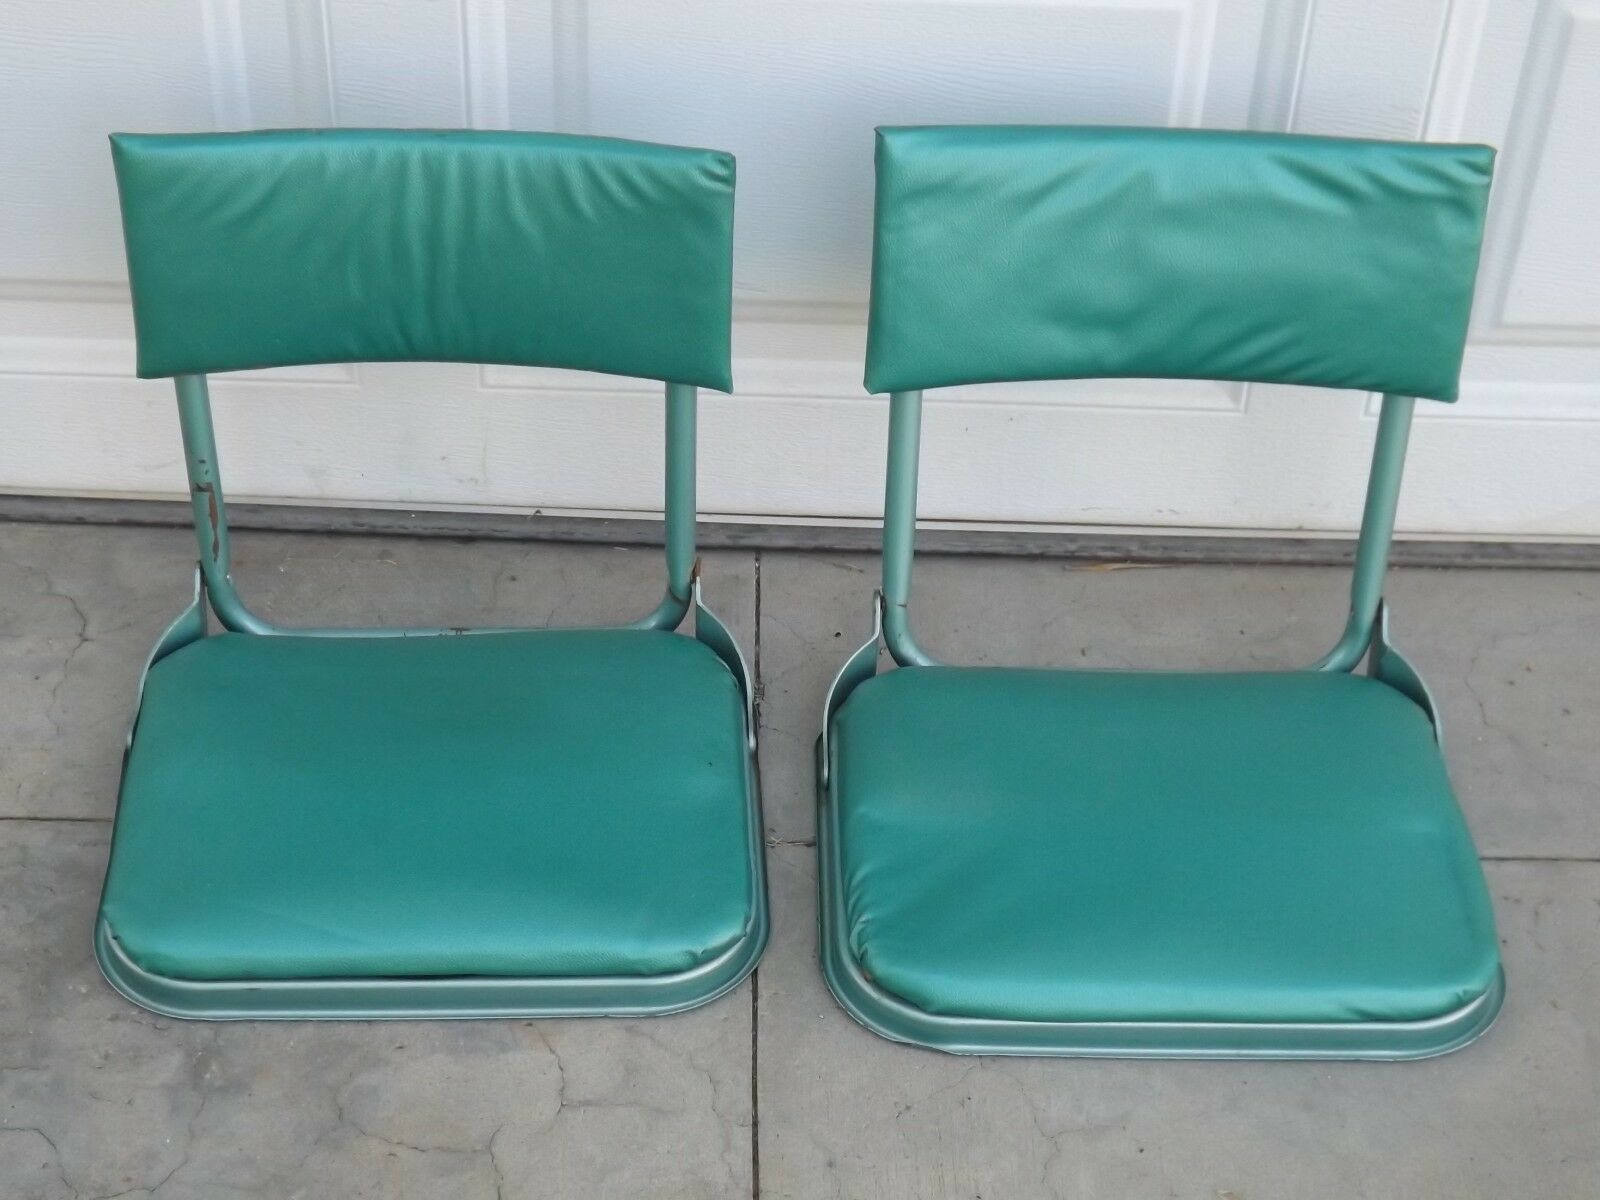 A Set of Vintage Camping Stadium green Metal Cushion Chairs